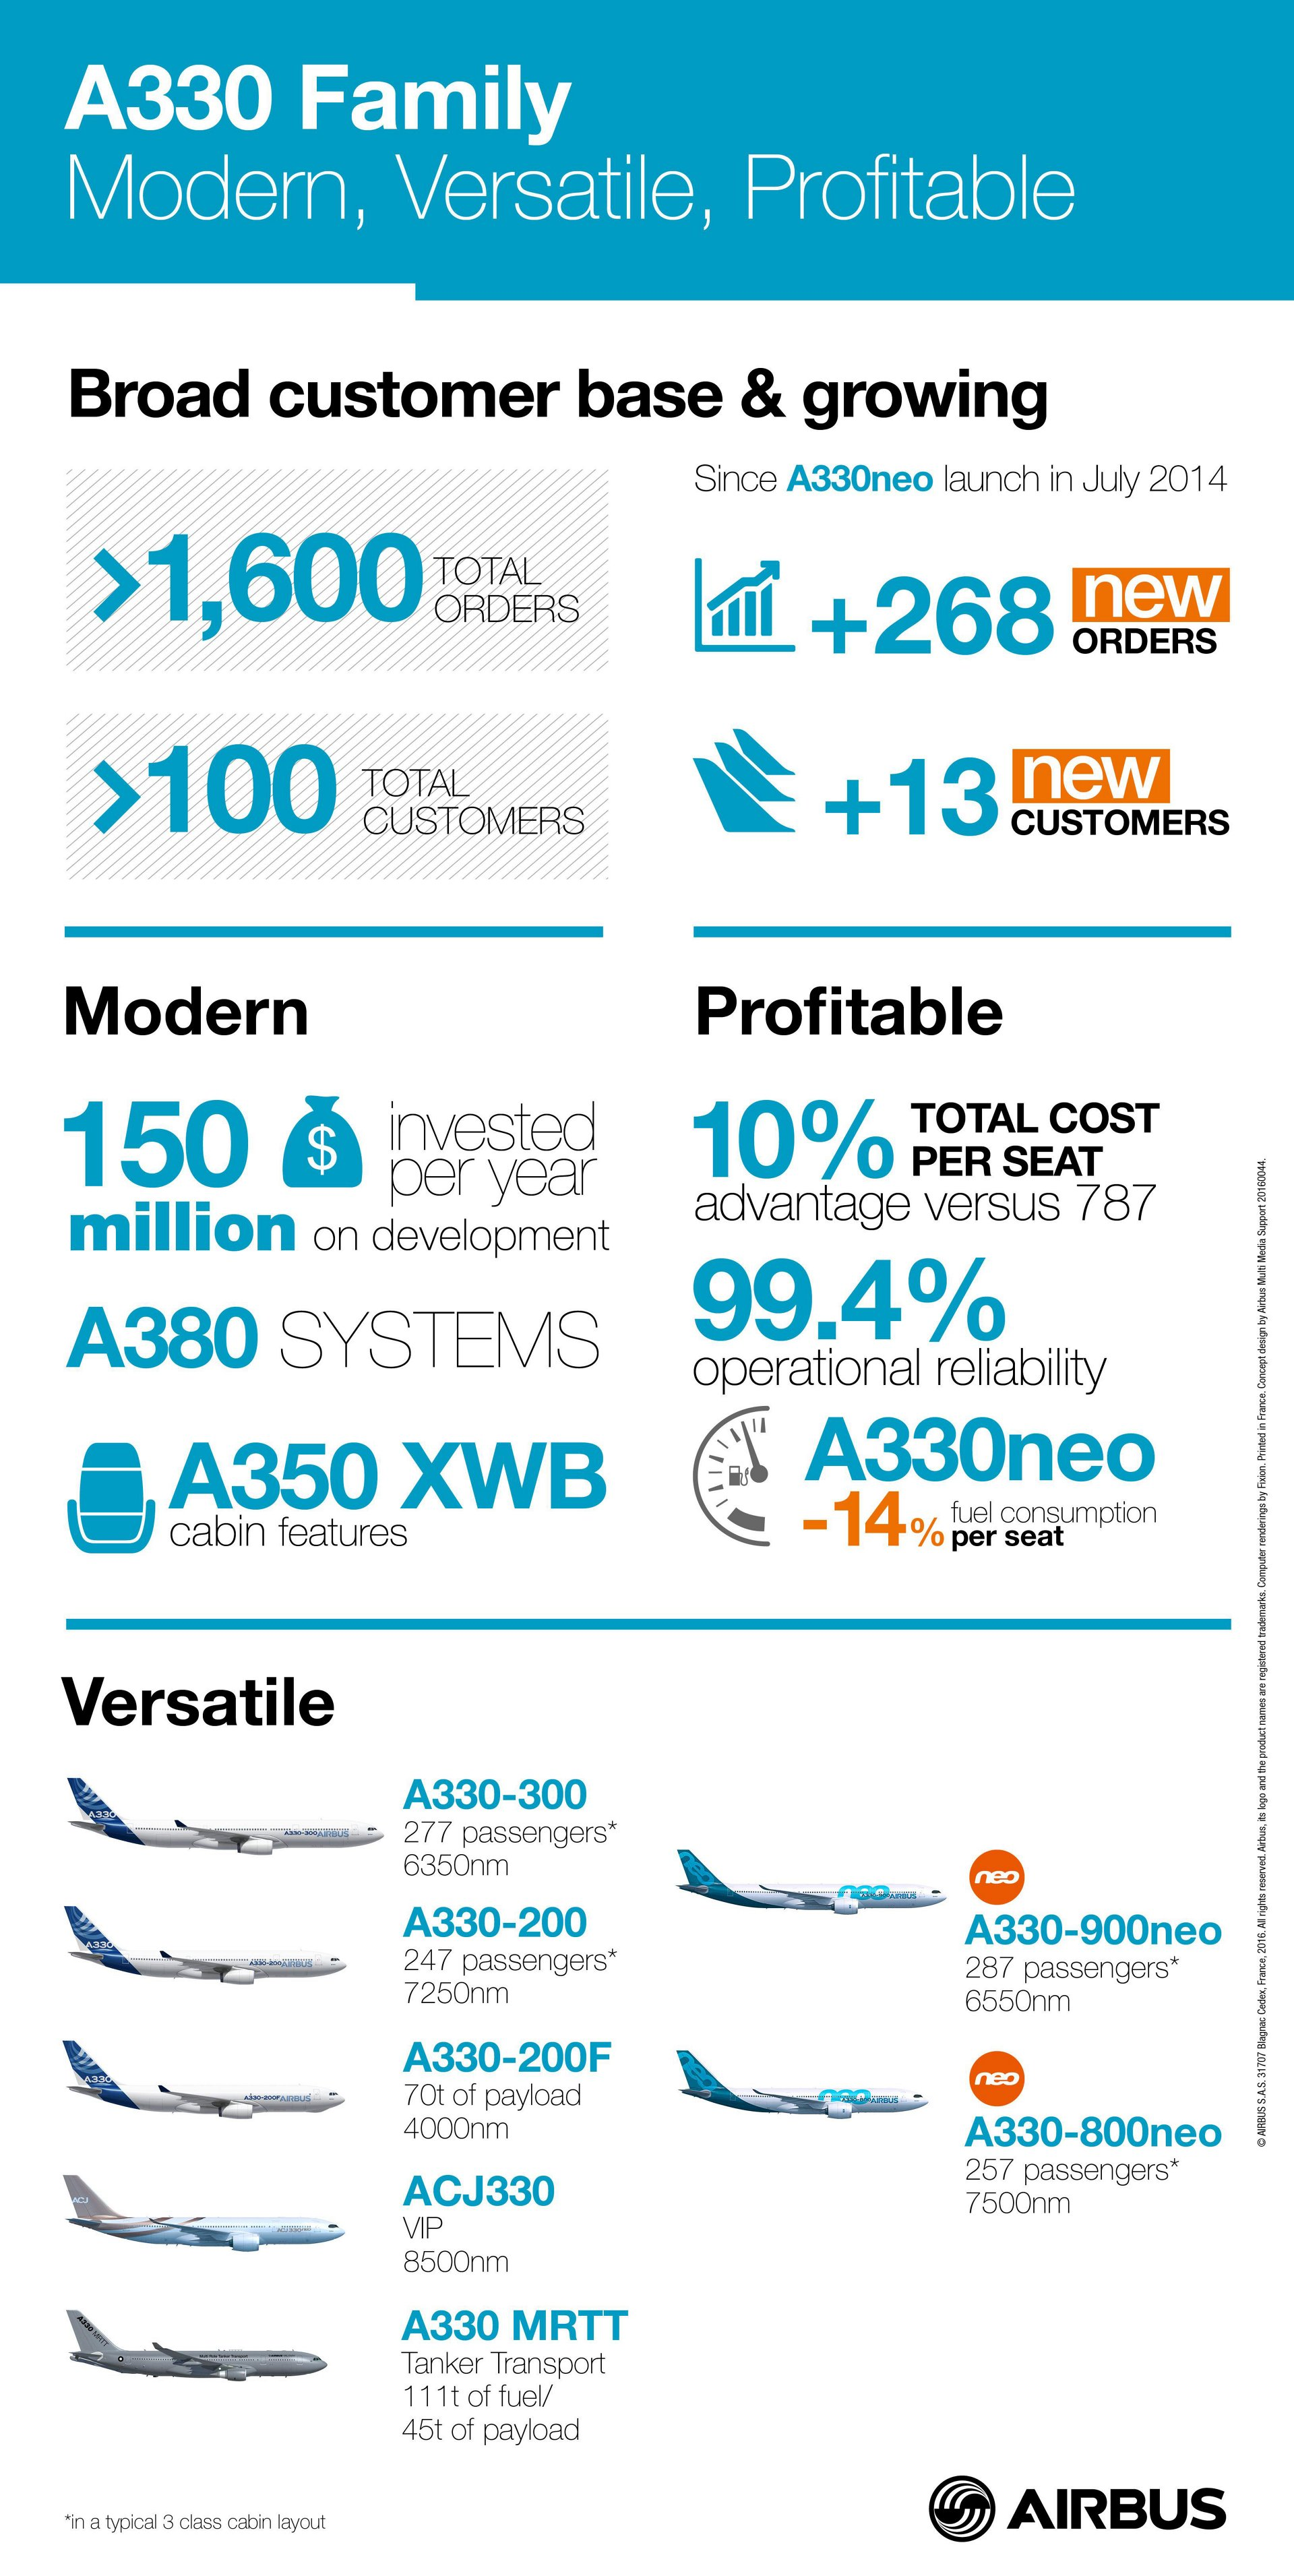 The A330 Family, for which Airbus announced a production rate increase that will take effect in January 2017, is modern, versatile and profitable